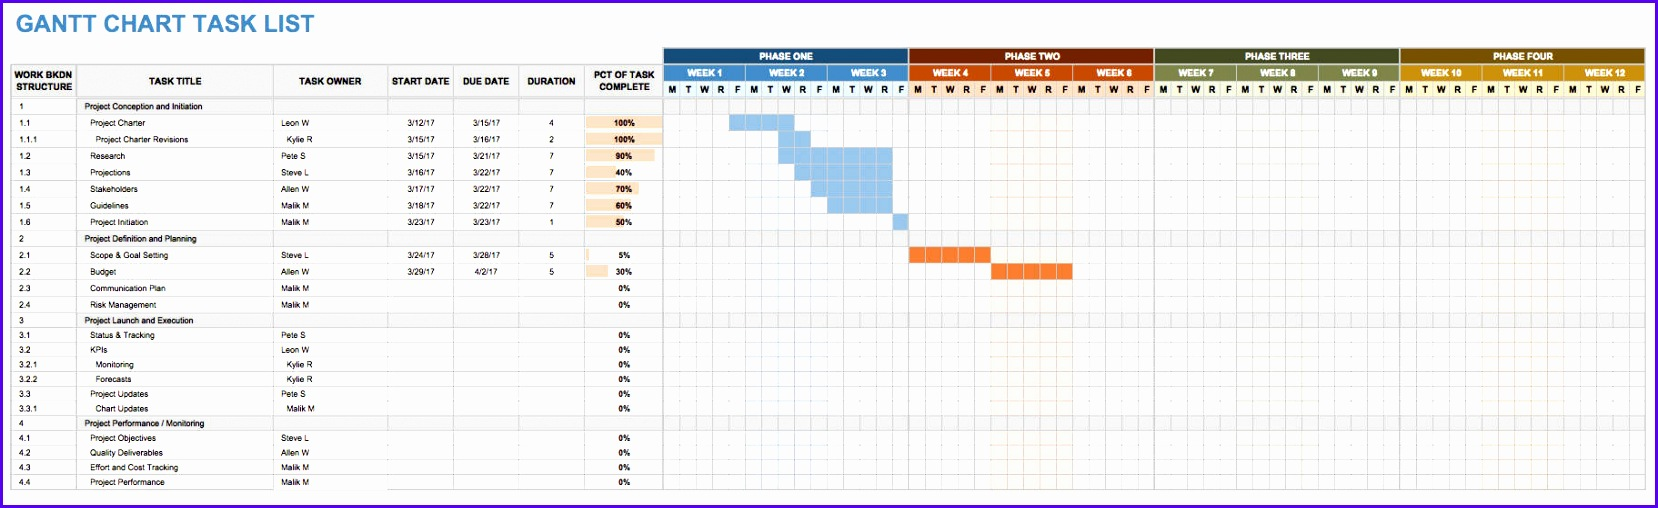 Sample Free Excel Construction Schedule Template Tjwkx Luxury Template Free Construction Schedule Spreadsheet 1823553